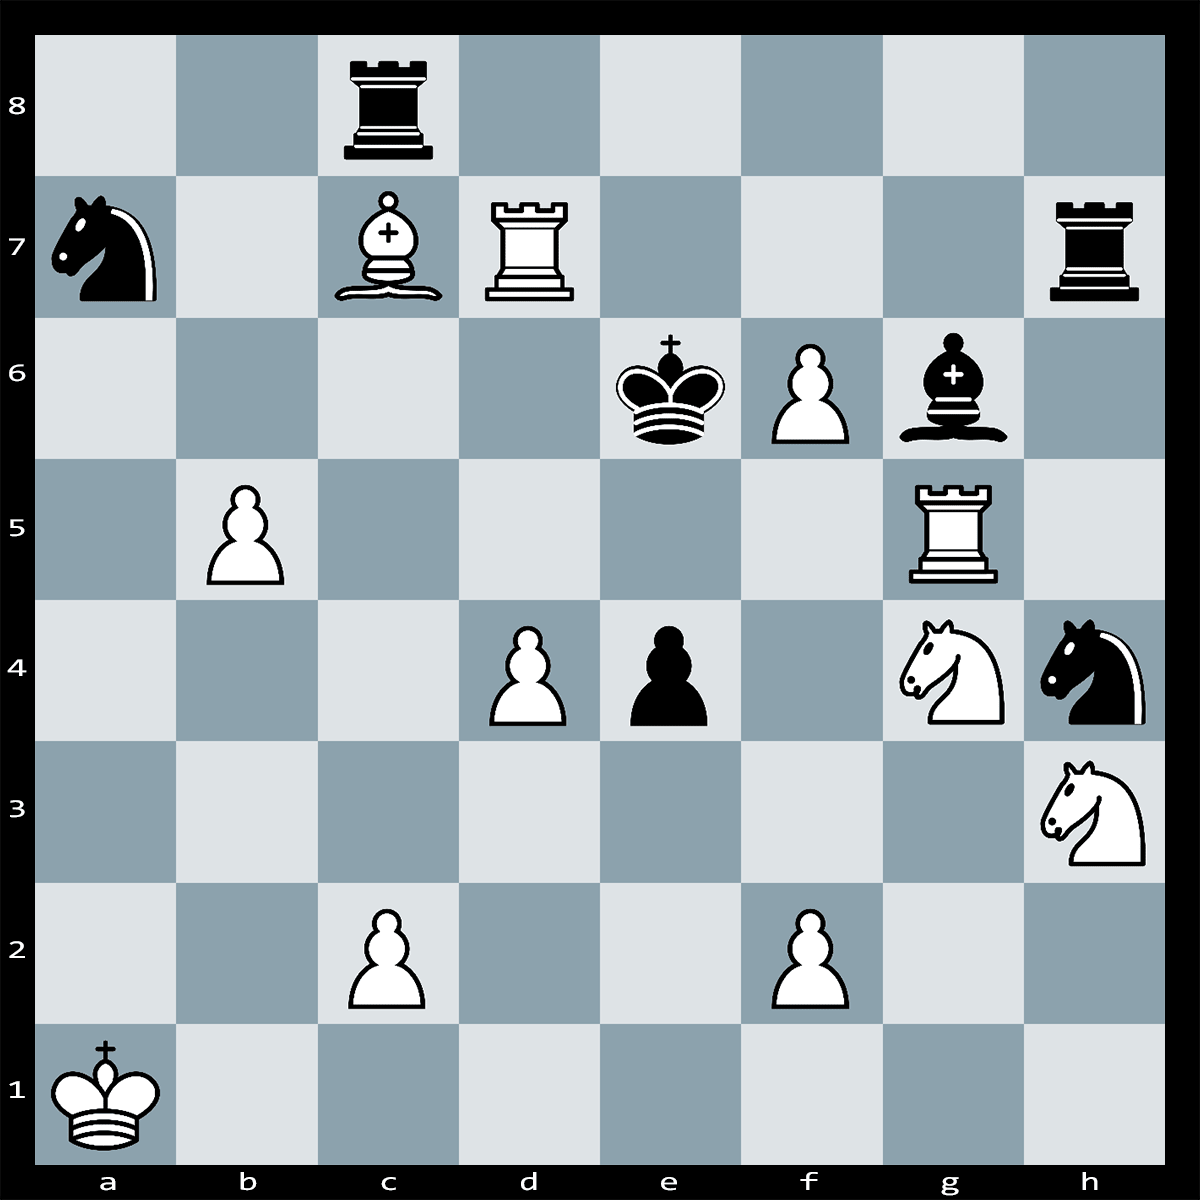 Mate in Five moves, White to play